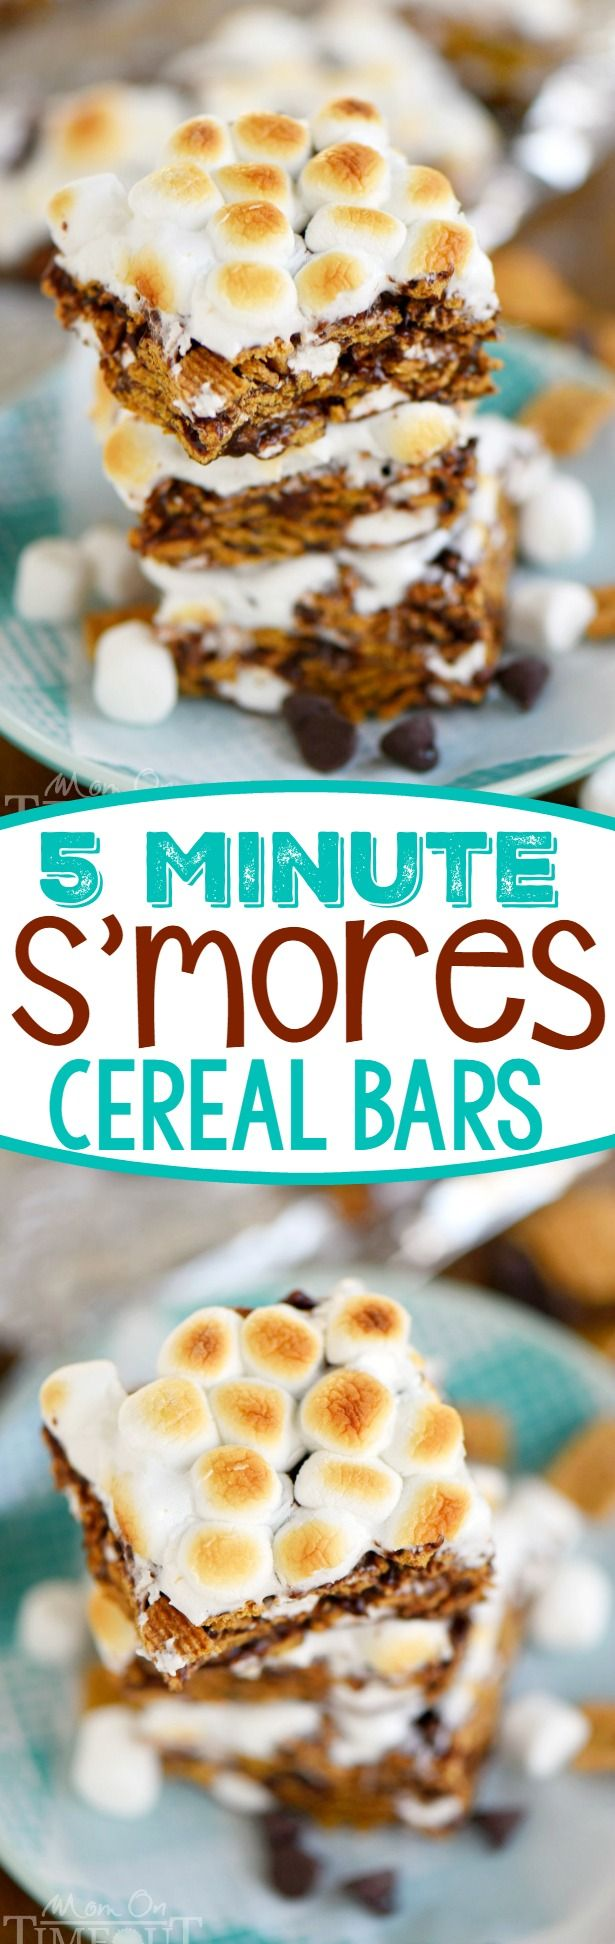 This delightfully easy recipe for 5 Minute S'mores Cereal Bars is going to become a new favorite for sure! Just 5 ingredients and loads of authentic s'mores flavor, these bars are adored by kids and adults alike! // Mom On Timeout #smores #dessert #recipe #cereal #easy #sweets #summer #bars